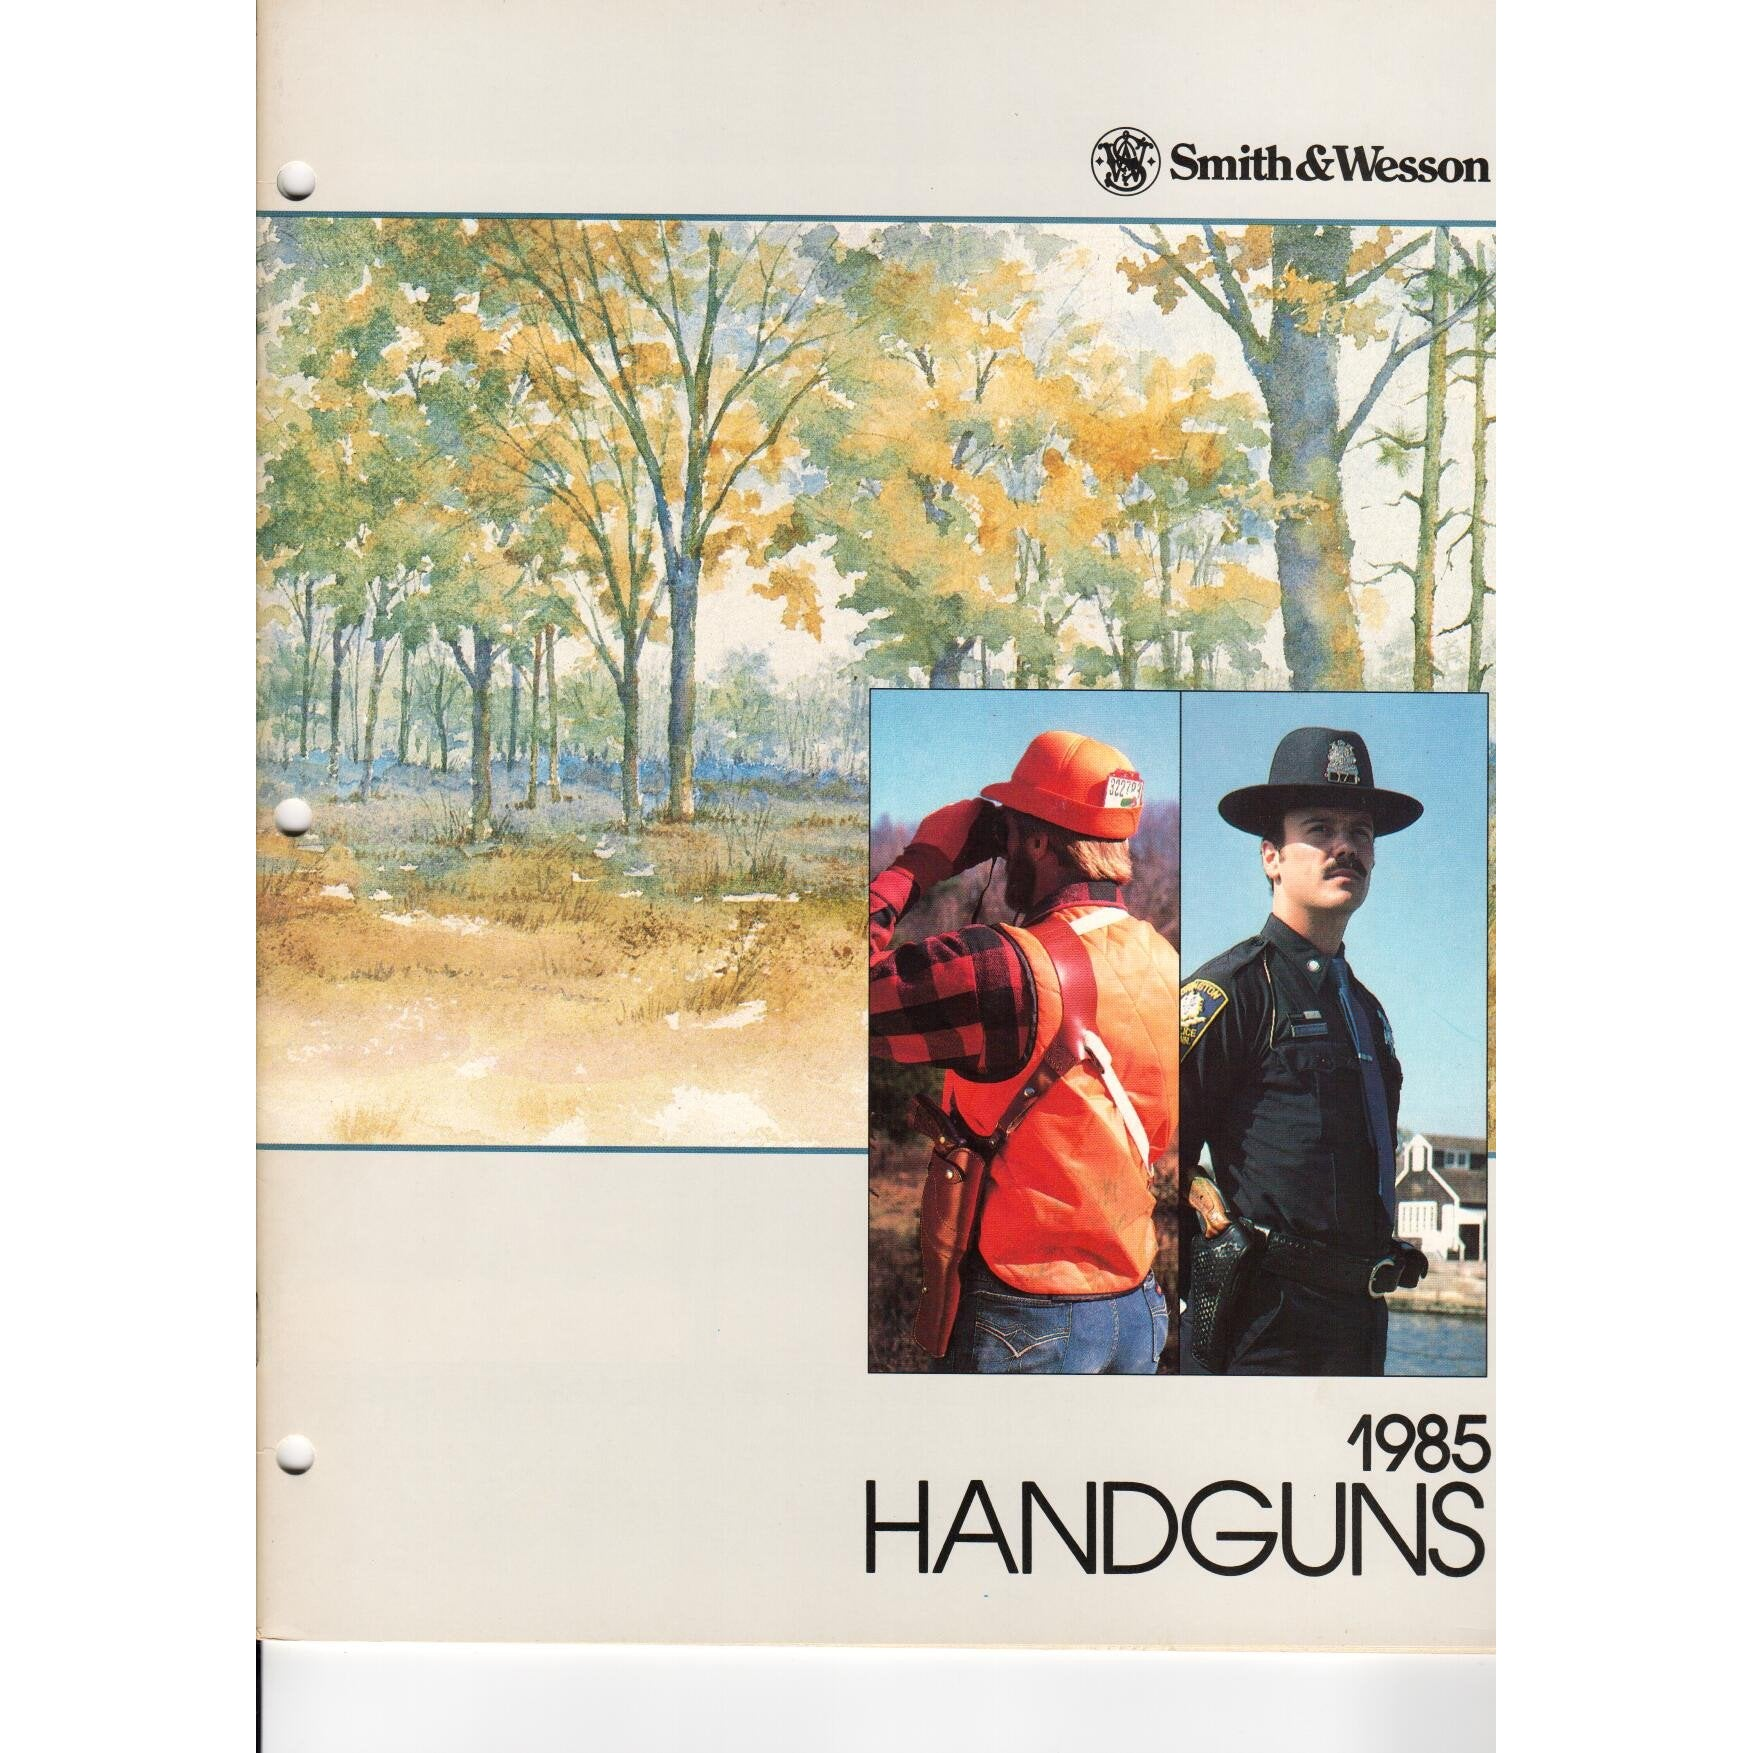 Smith & Wesson 1985 Handguns,Catalogues & Brochures- Canada Brass